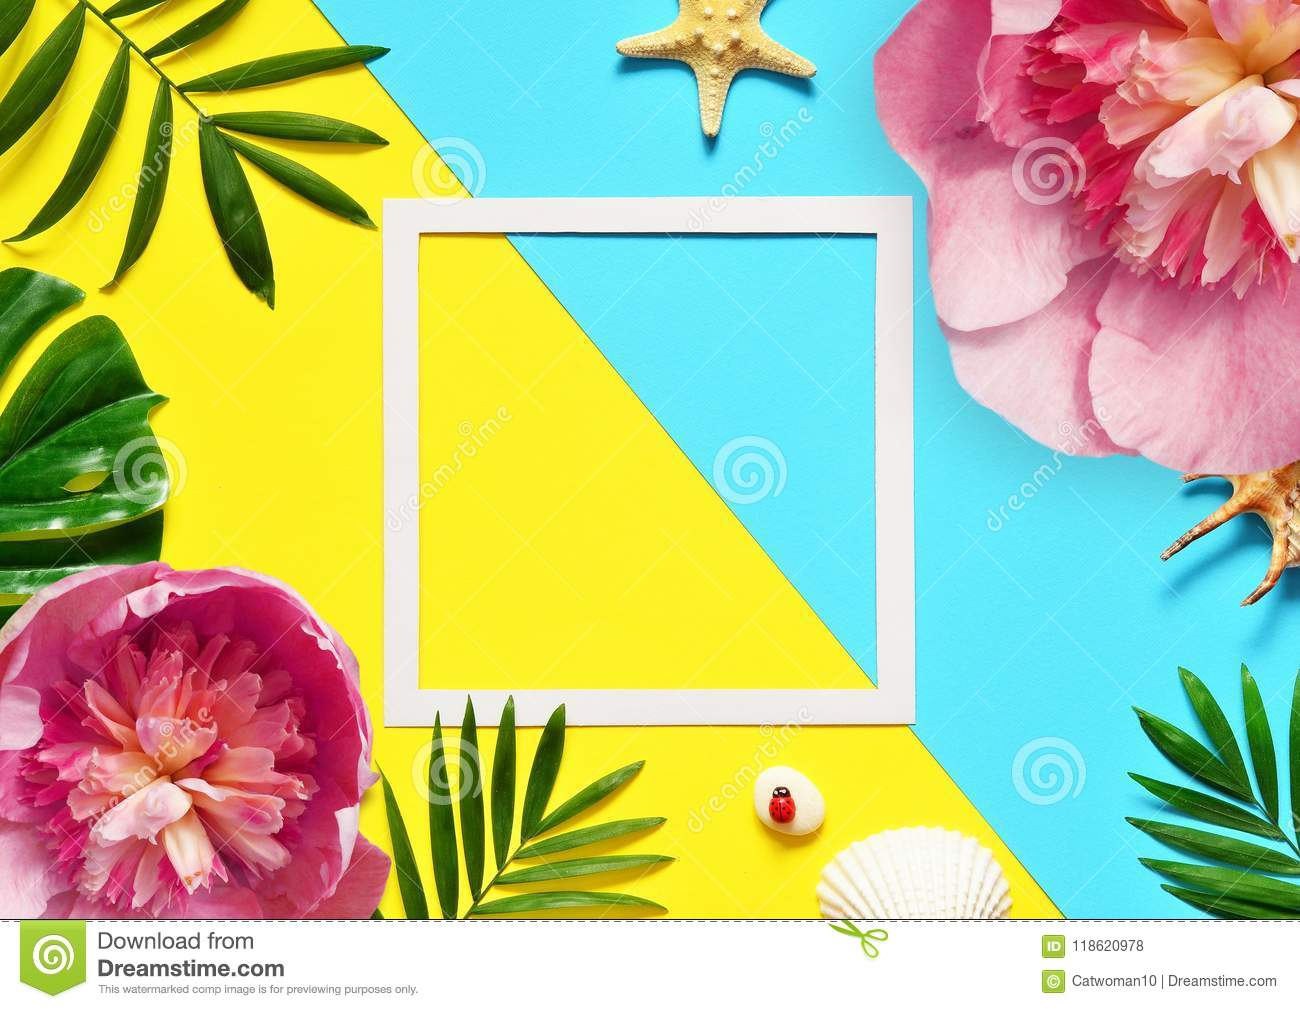 Tropical Background. Palm Trees Branches with starfish and seashell on yellow and blue background. Travel. Copy space.